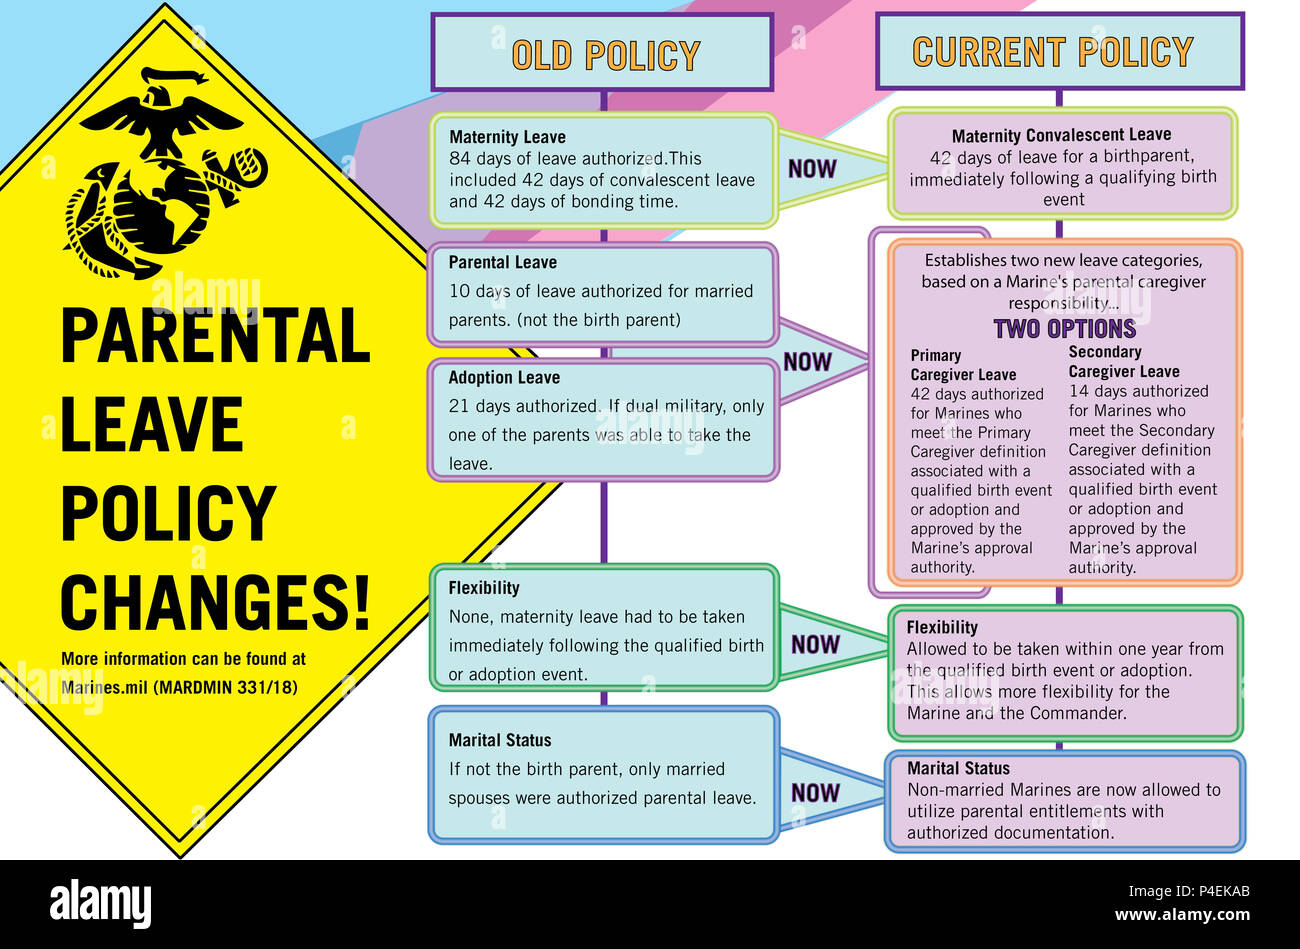 This infographic highlights the parental leave policy changes. (U.S. Marine Corps graphic by Sgt. Elize McKelvey) - Stock Image